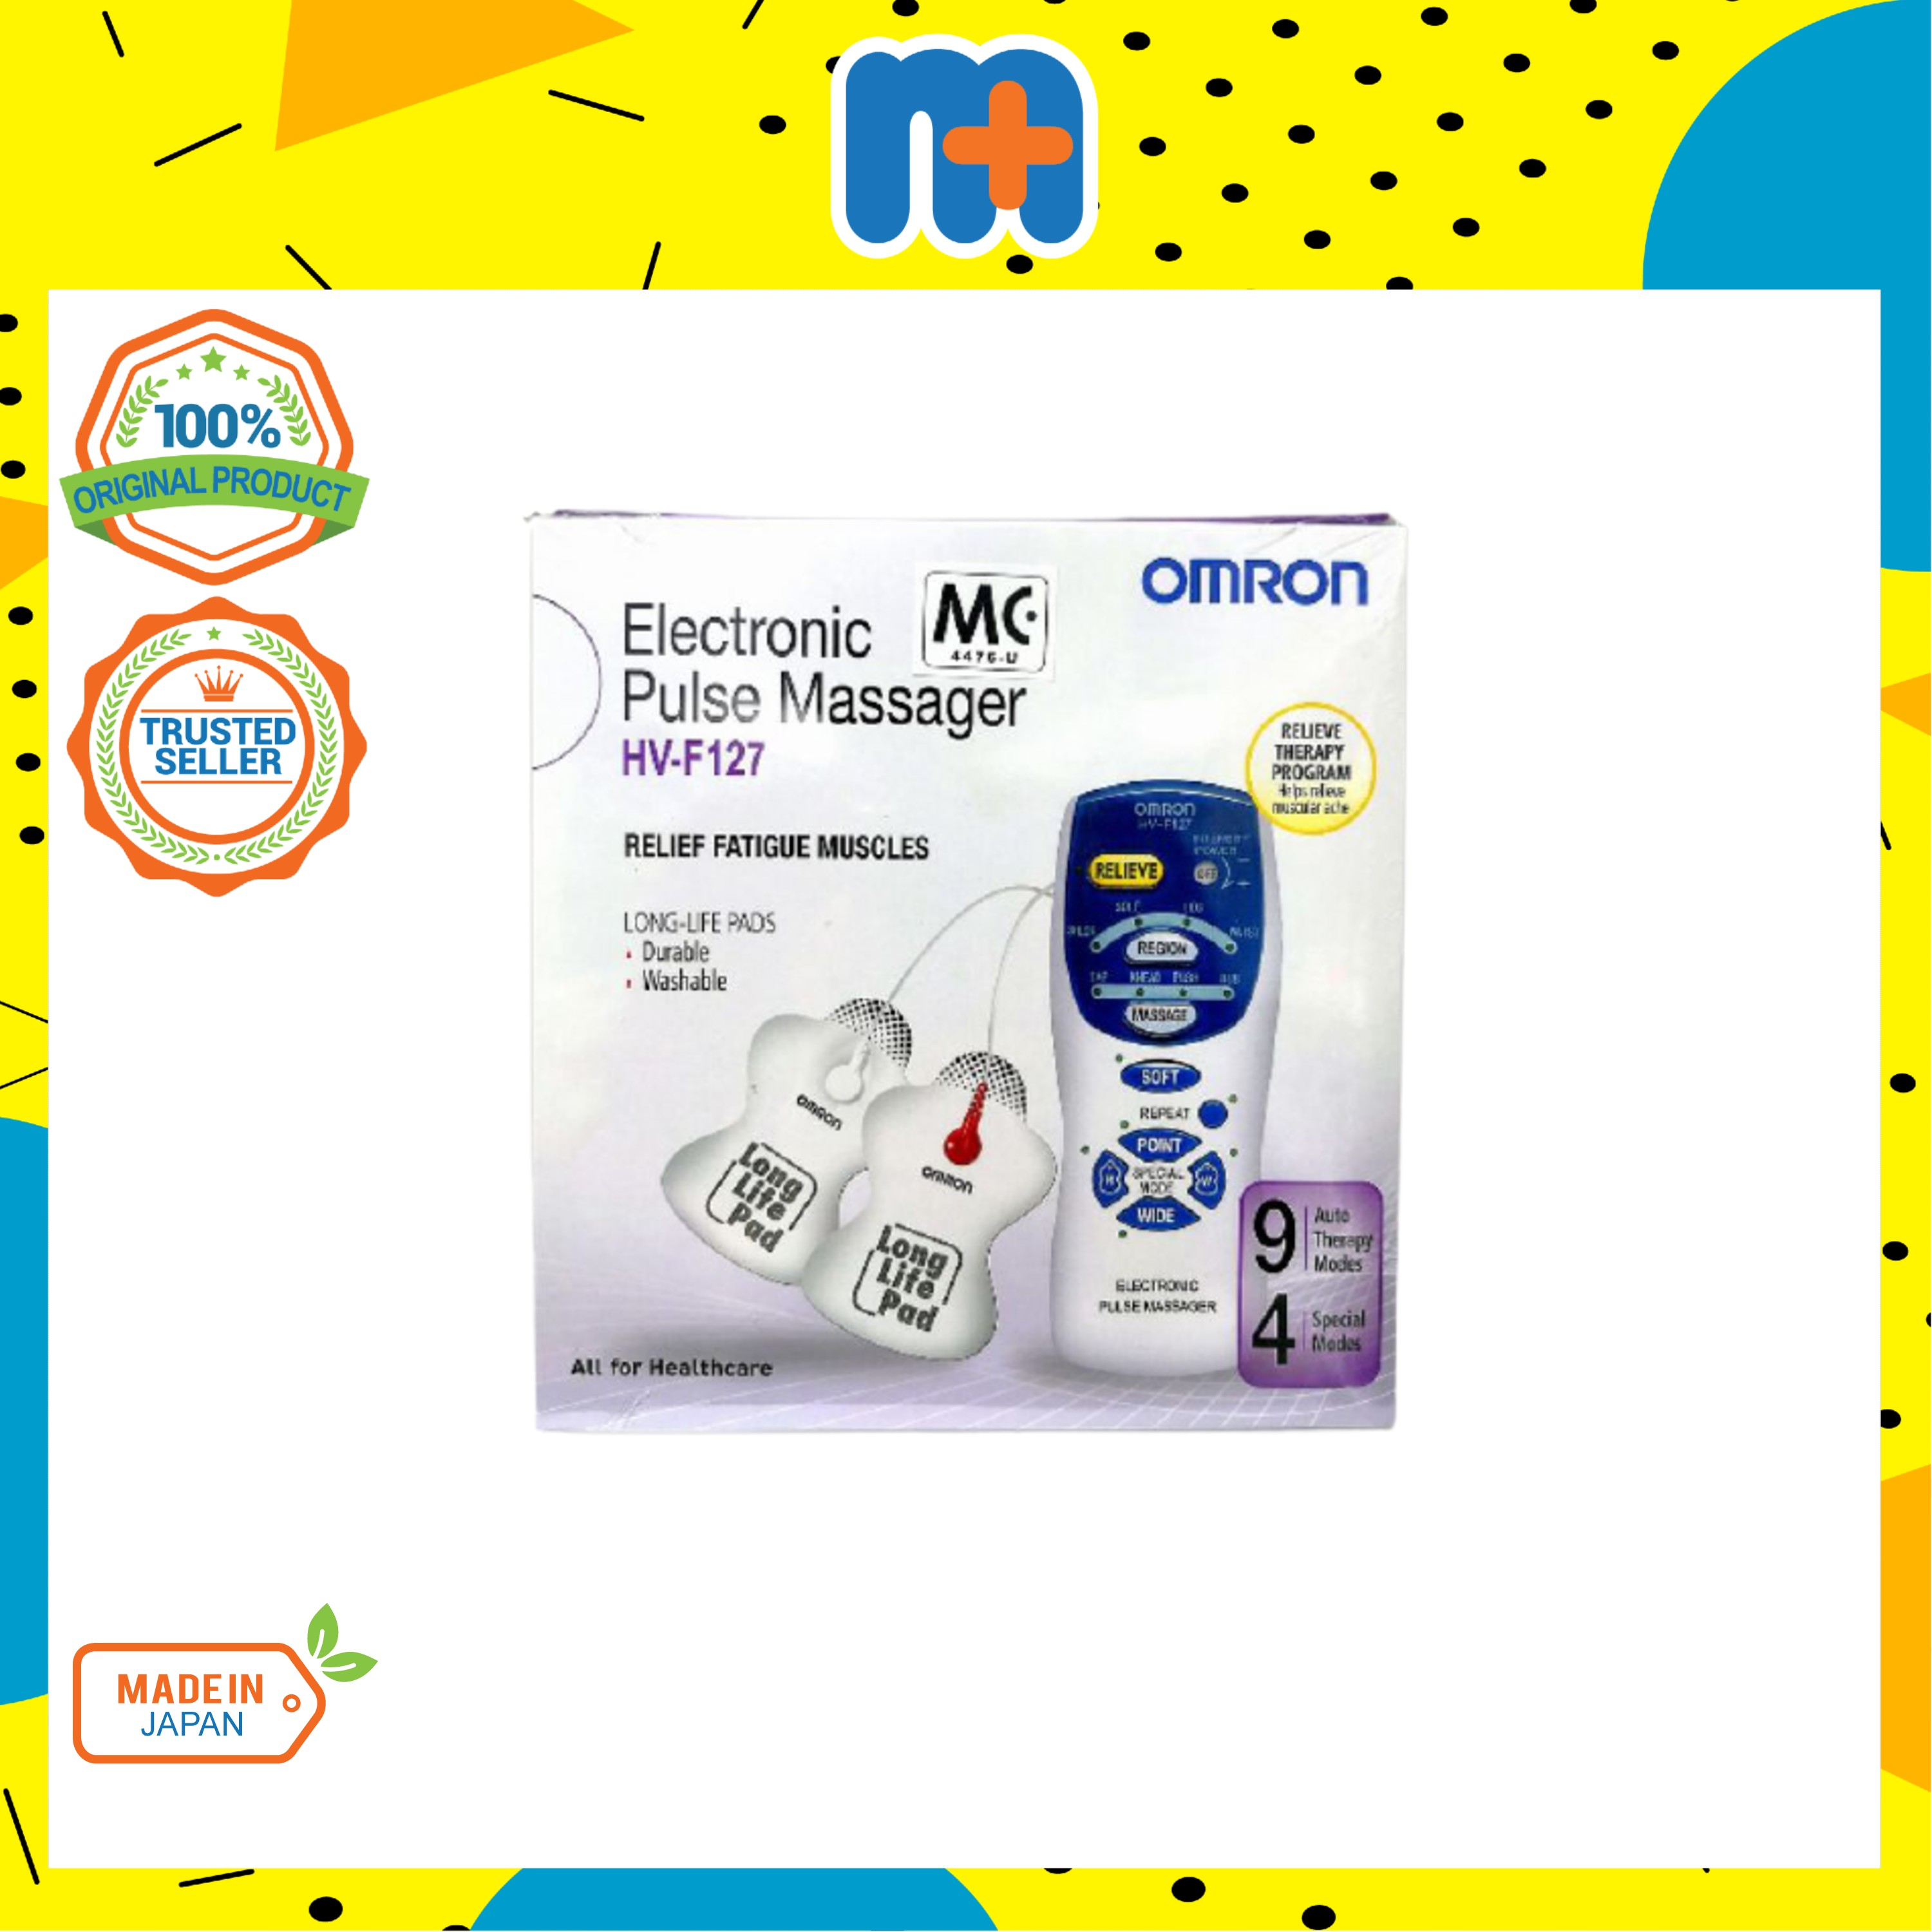 [MPLUS] OMRON Electronic Pulse Massager Hv-F127